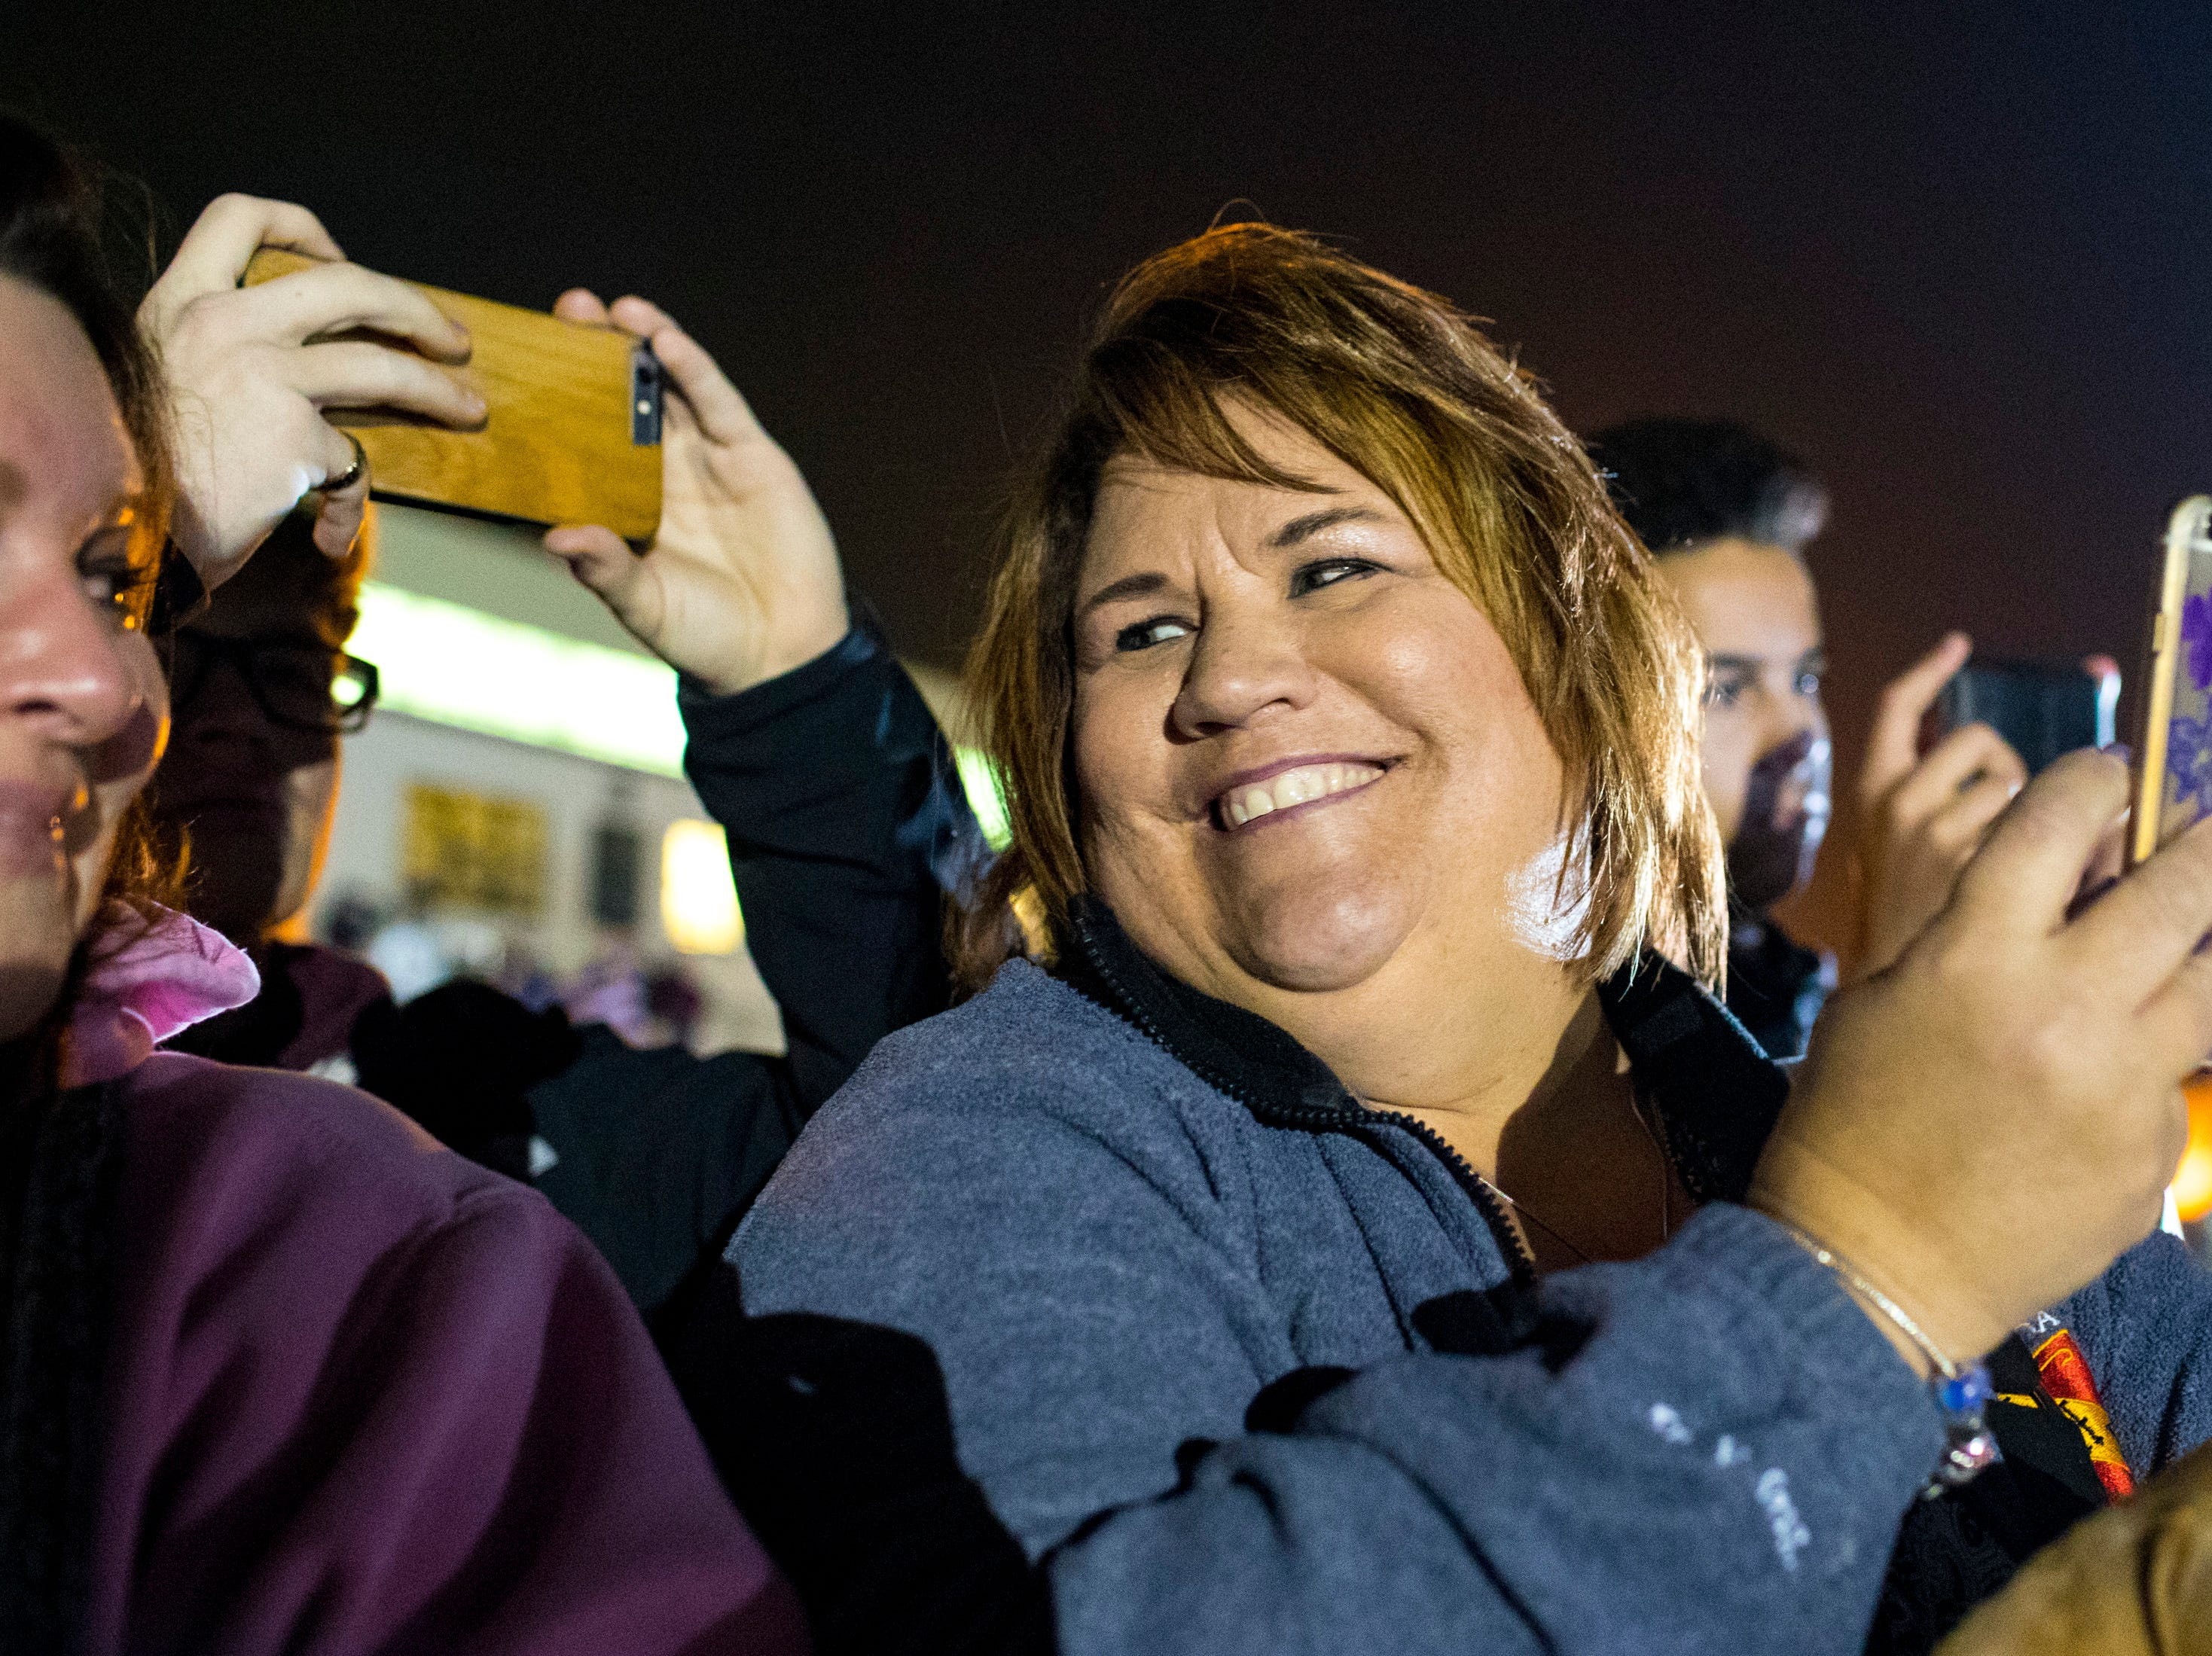 Beverly Eickmeyer prepares to surprise her son Staff Sgt. Matthew Eickmeyer during the welcome home ceremony for the 2nd Battalion, 44th Air Defense Artillery Regiment and 101st Airborne Division at Fort Campbell in the early hours of Monday, Nov. 19, 2018. The soldiers were returning from a 9-month deployment in Afghanistan.